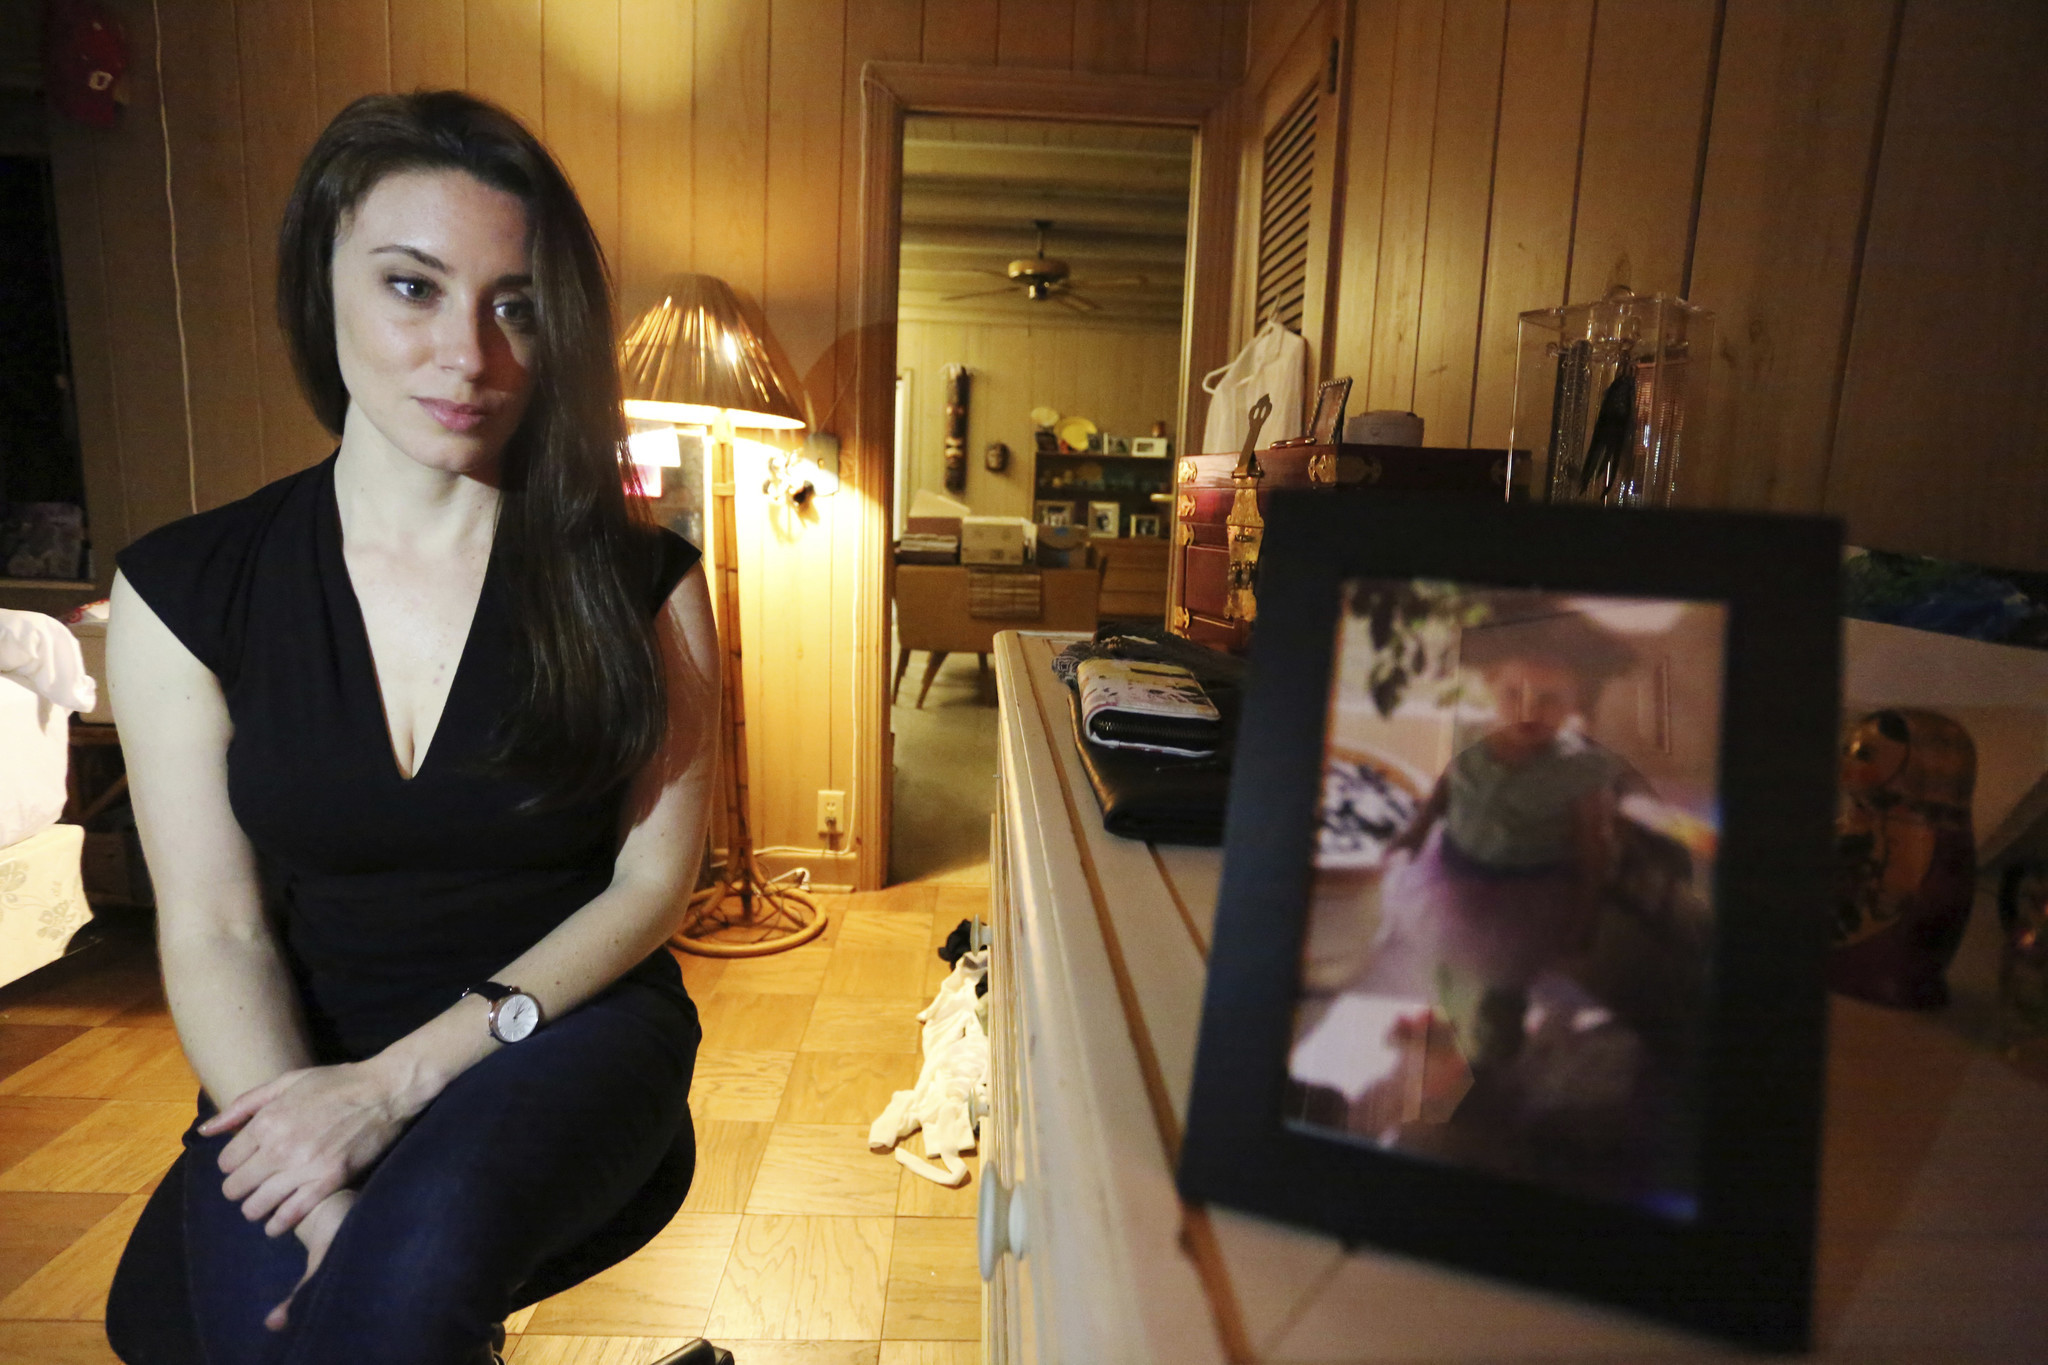 Casey Anthony speaks about daughter's murder case, 2011 acquittal - Chicago  Tribune